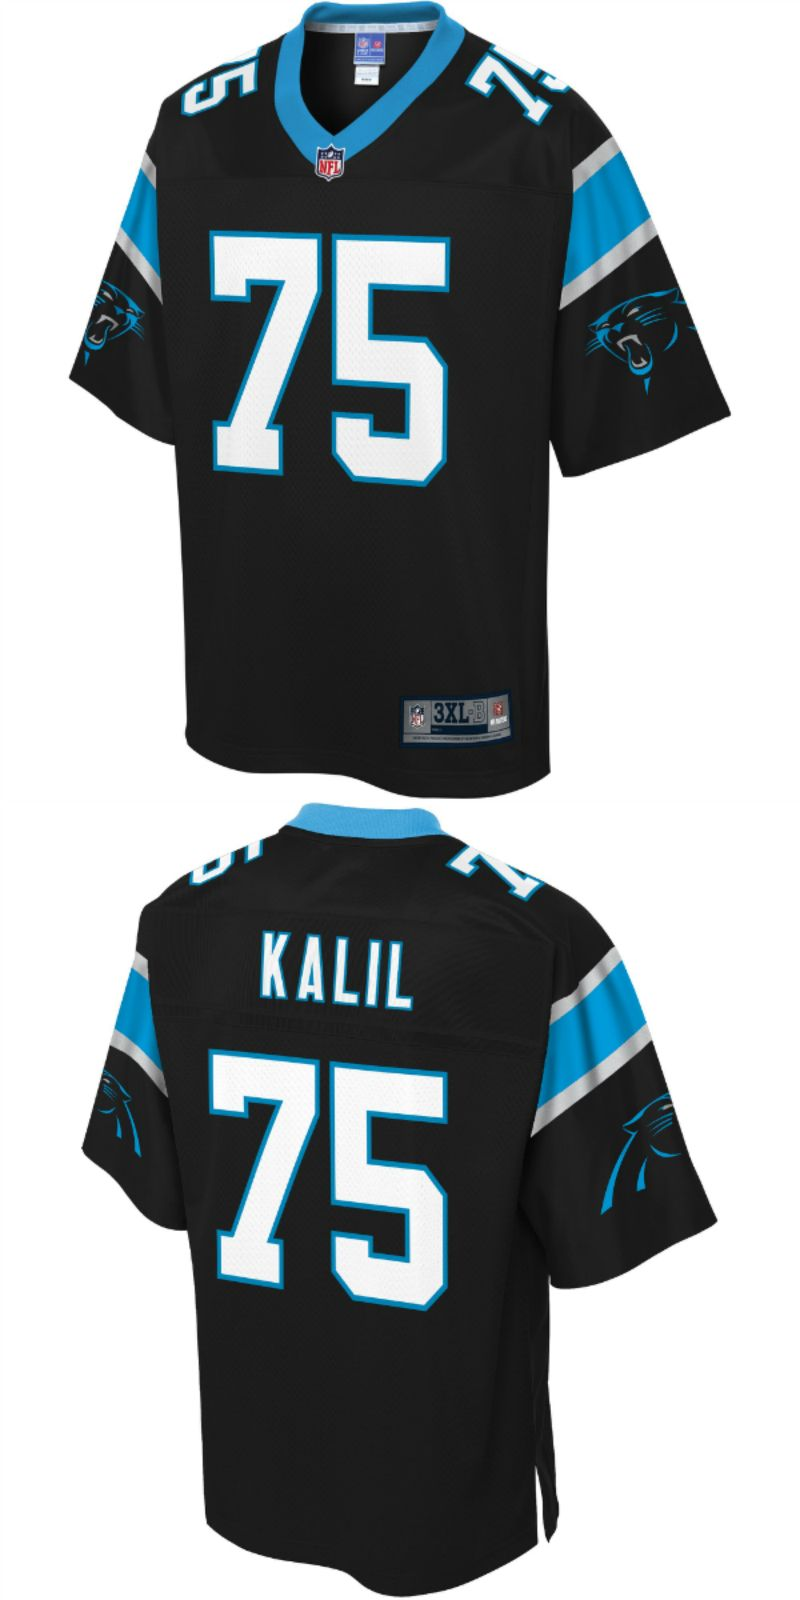 super popular d7181 1facd UP TO 70% OFF. Matt Kalil Carolina Panthers NFL Pro Line Big ...